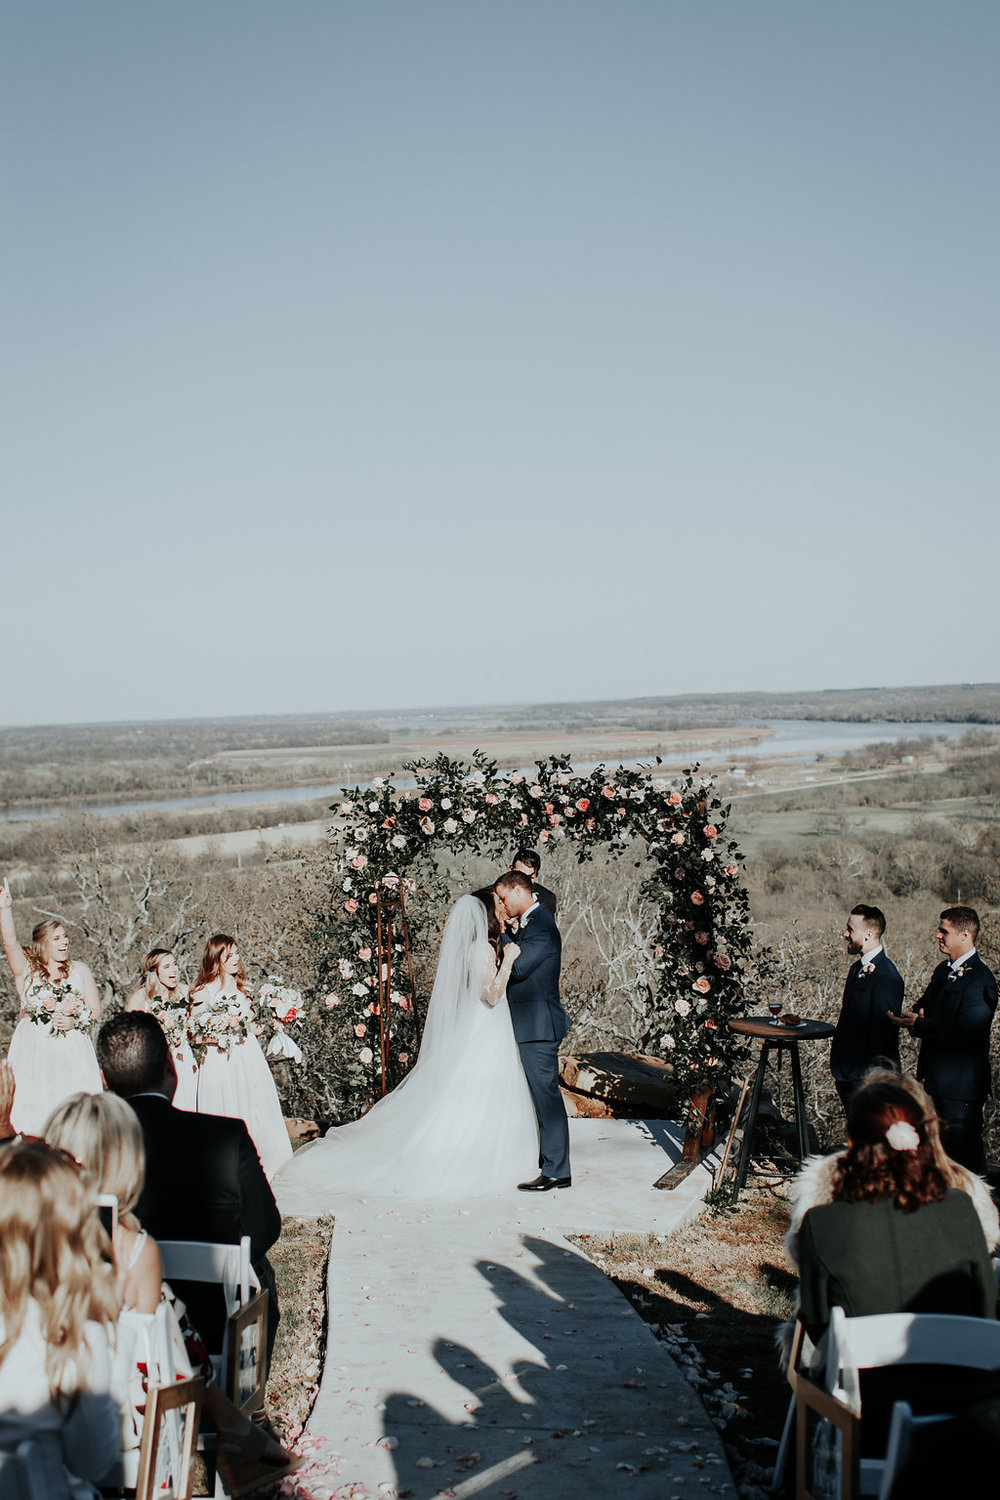 Tulsa Wedding Venue outdoor ceremony 6.jpg